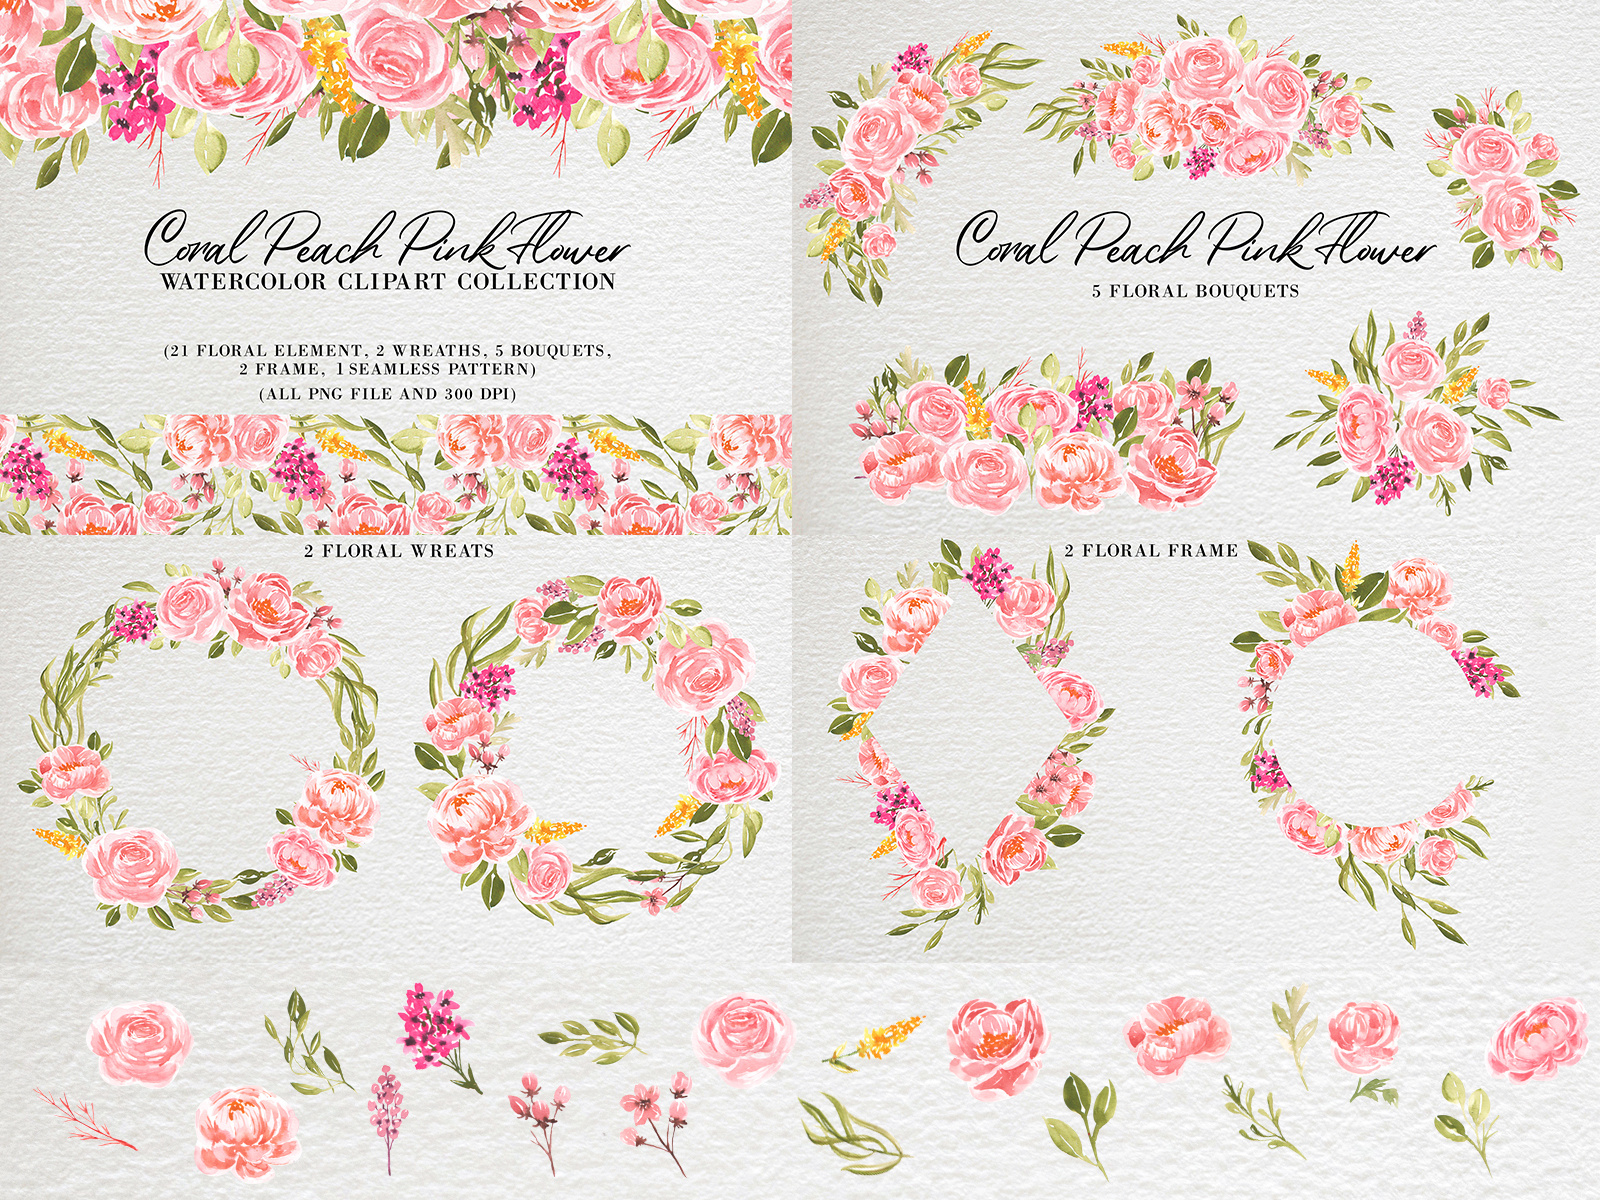 Coral Peach Pink Flower Watercolor by OrchidART on Dribbble.